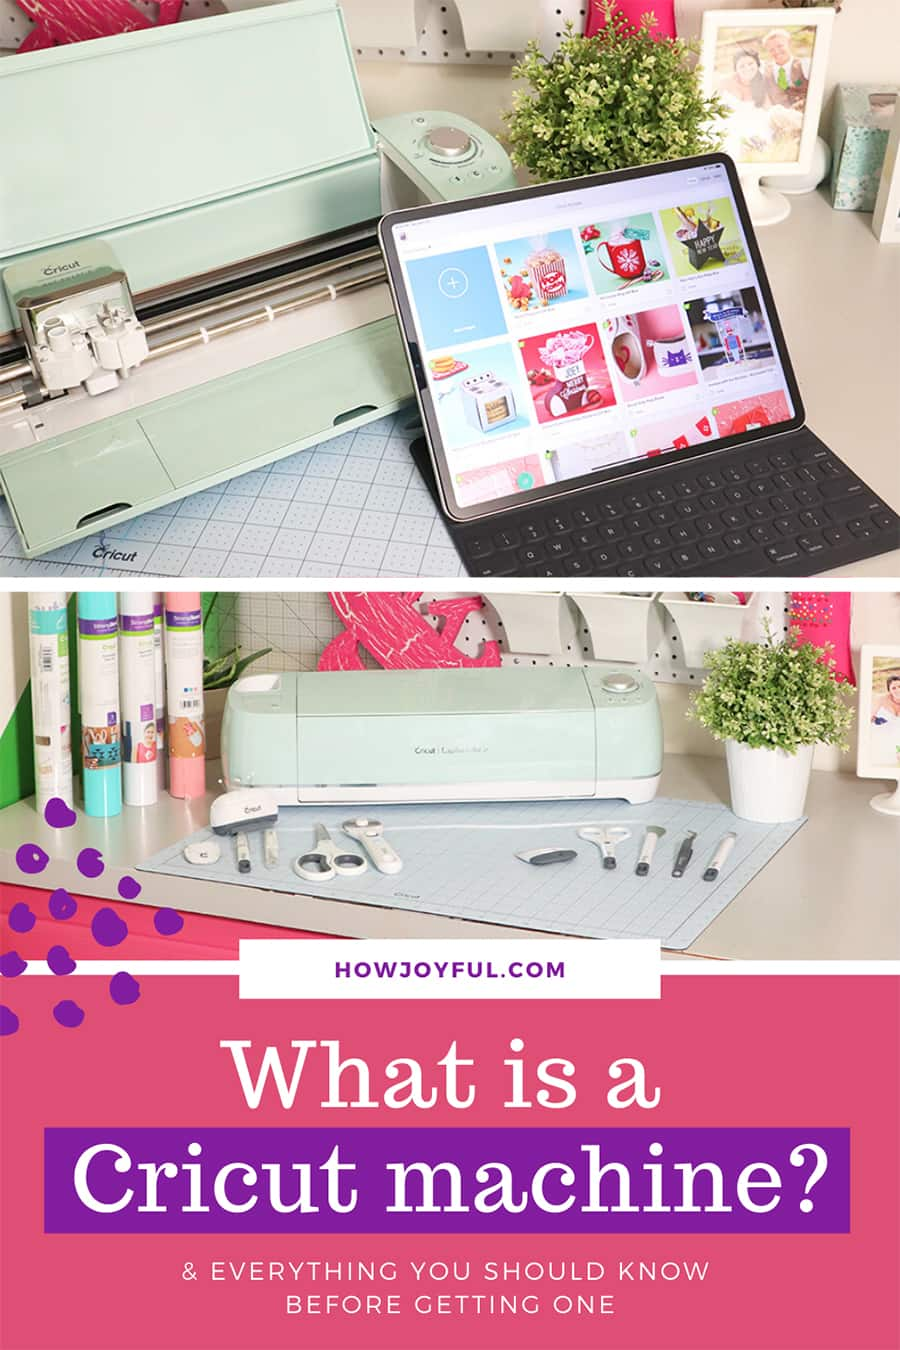 Everything you should know about Cricut machines